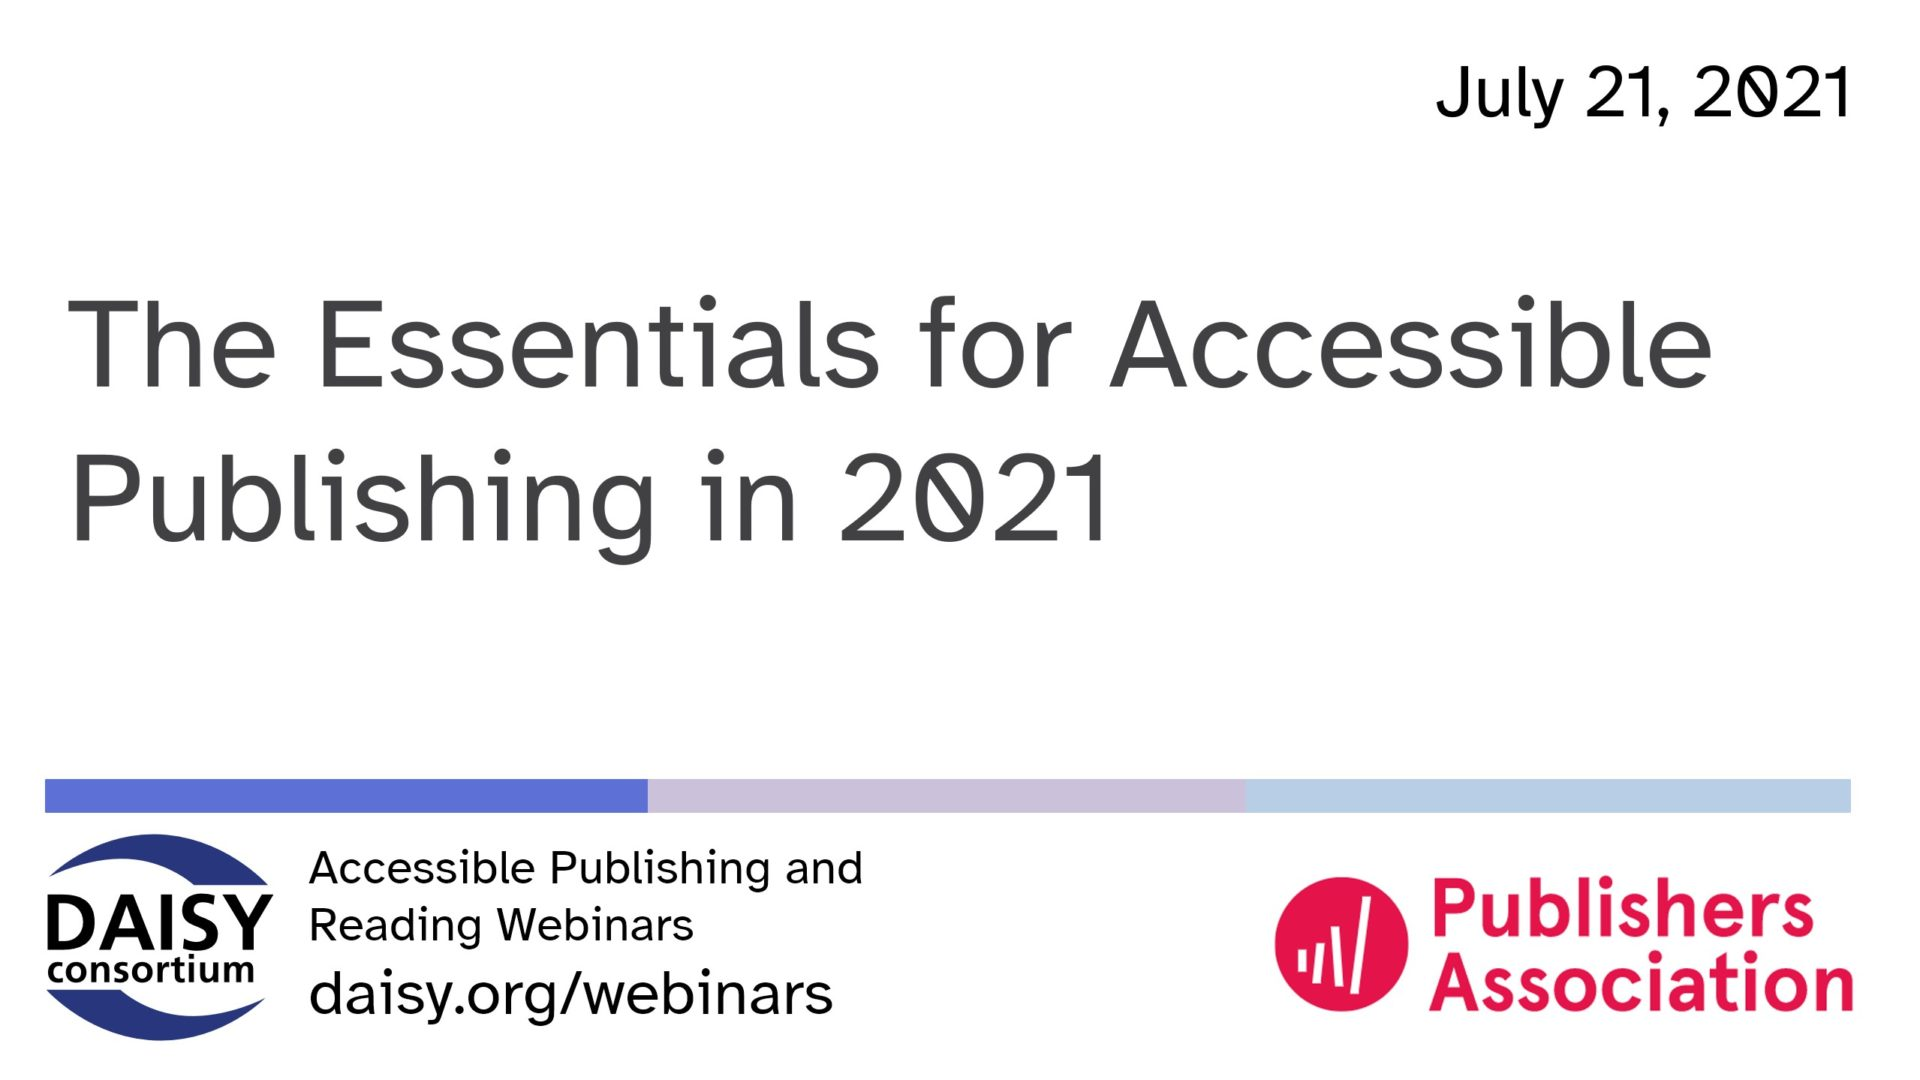 opening slide: The Essentials for Accessible Publishing in 2021